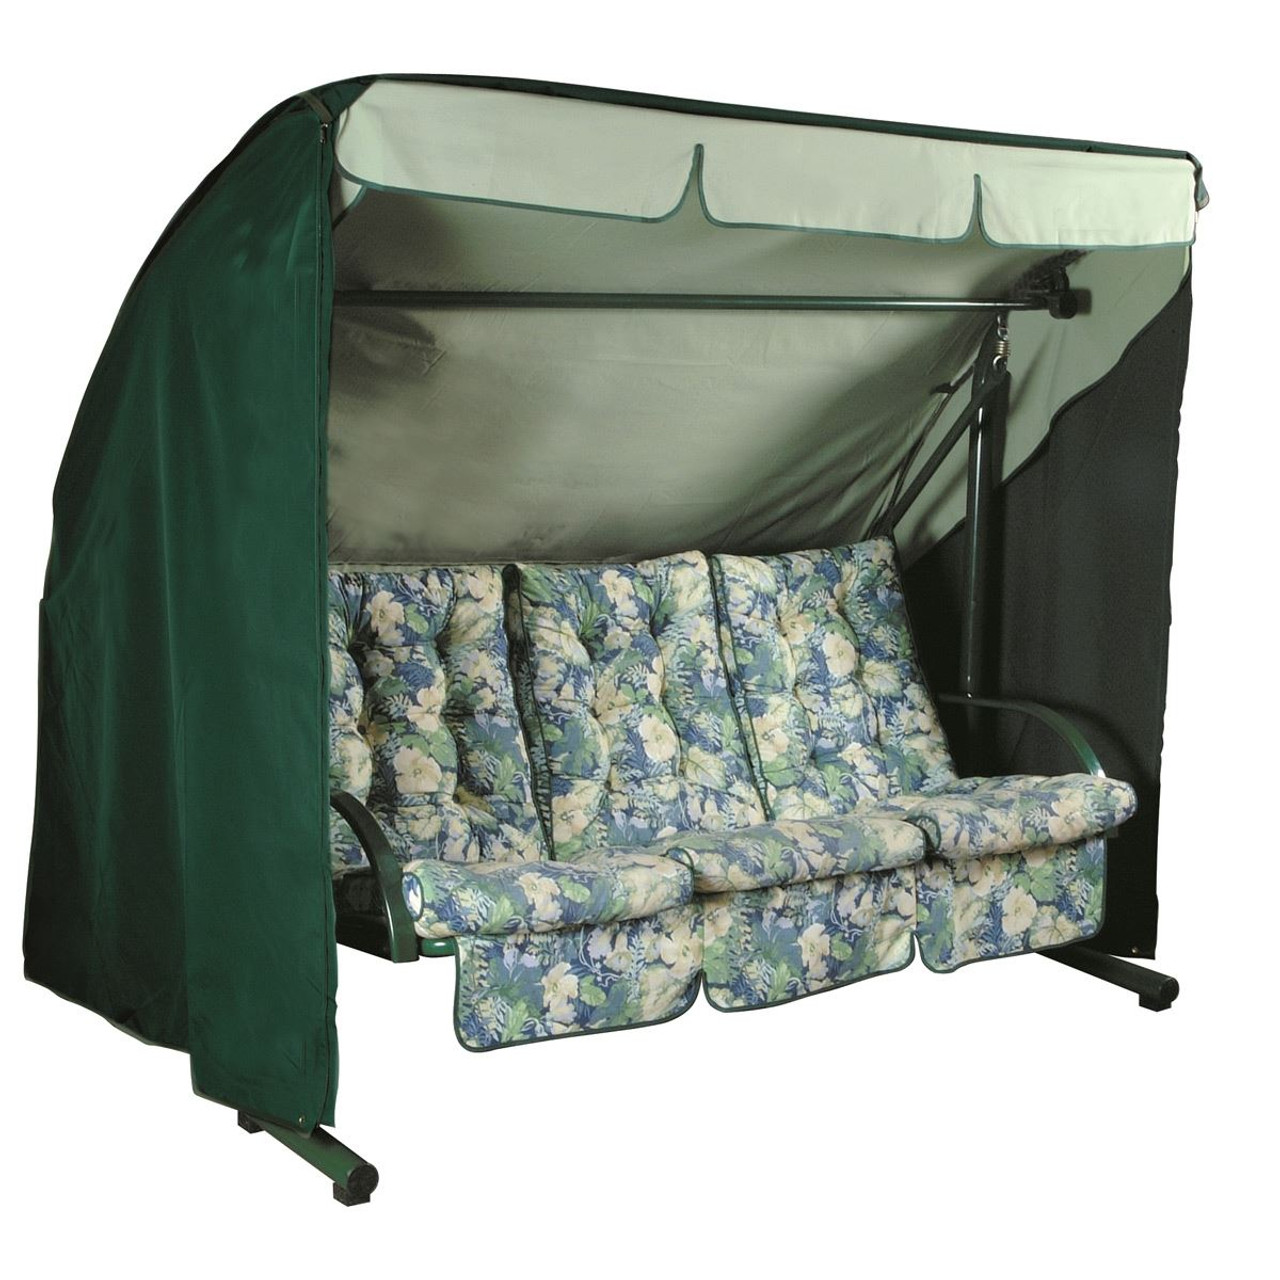 Bosmere Protector 6000 Hammock Cover 3-4 Seater